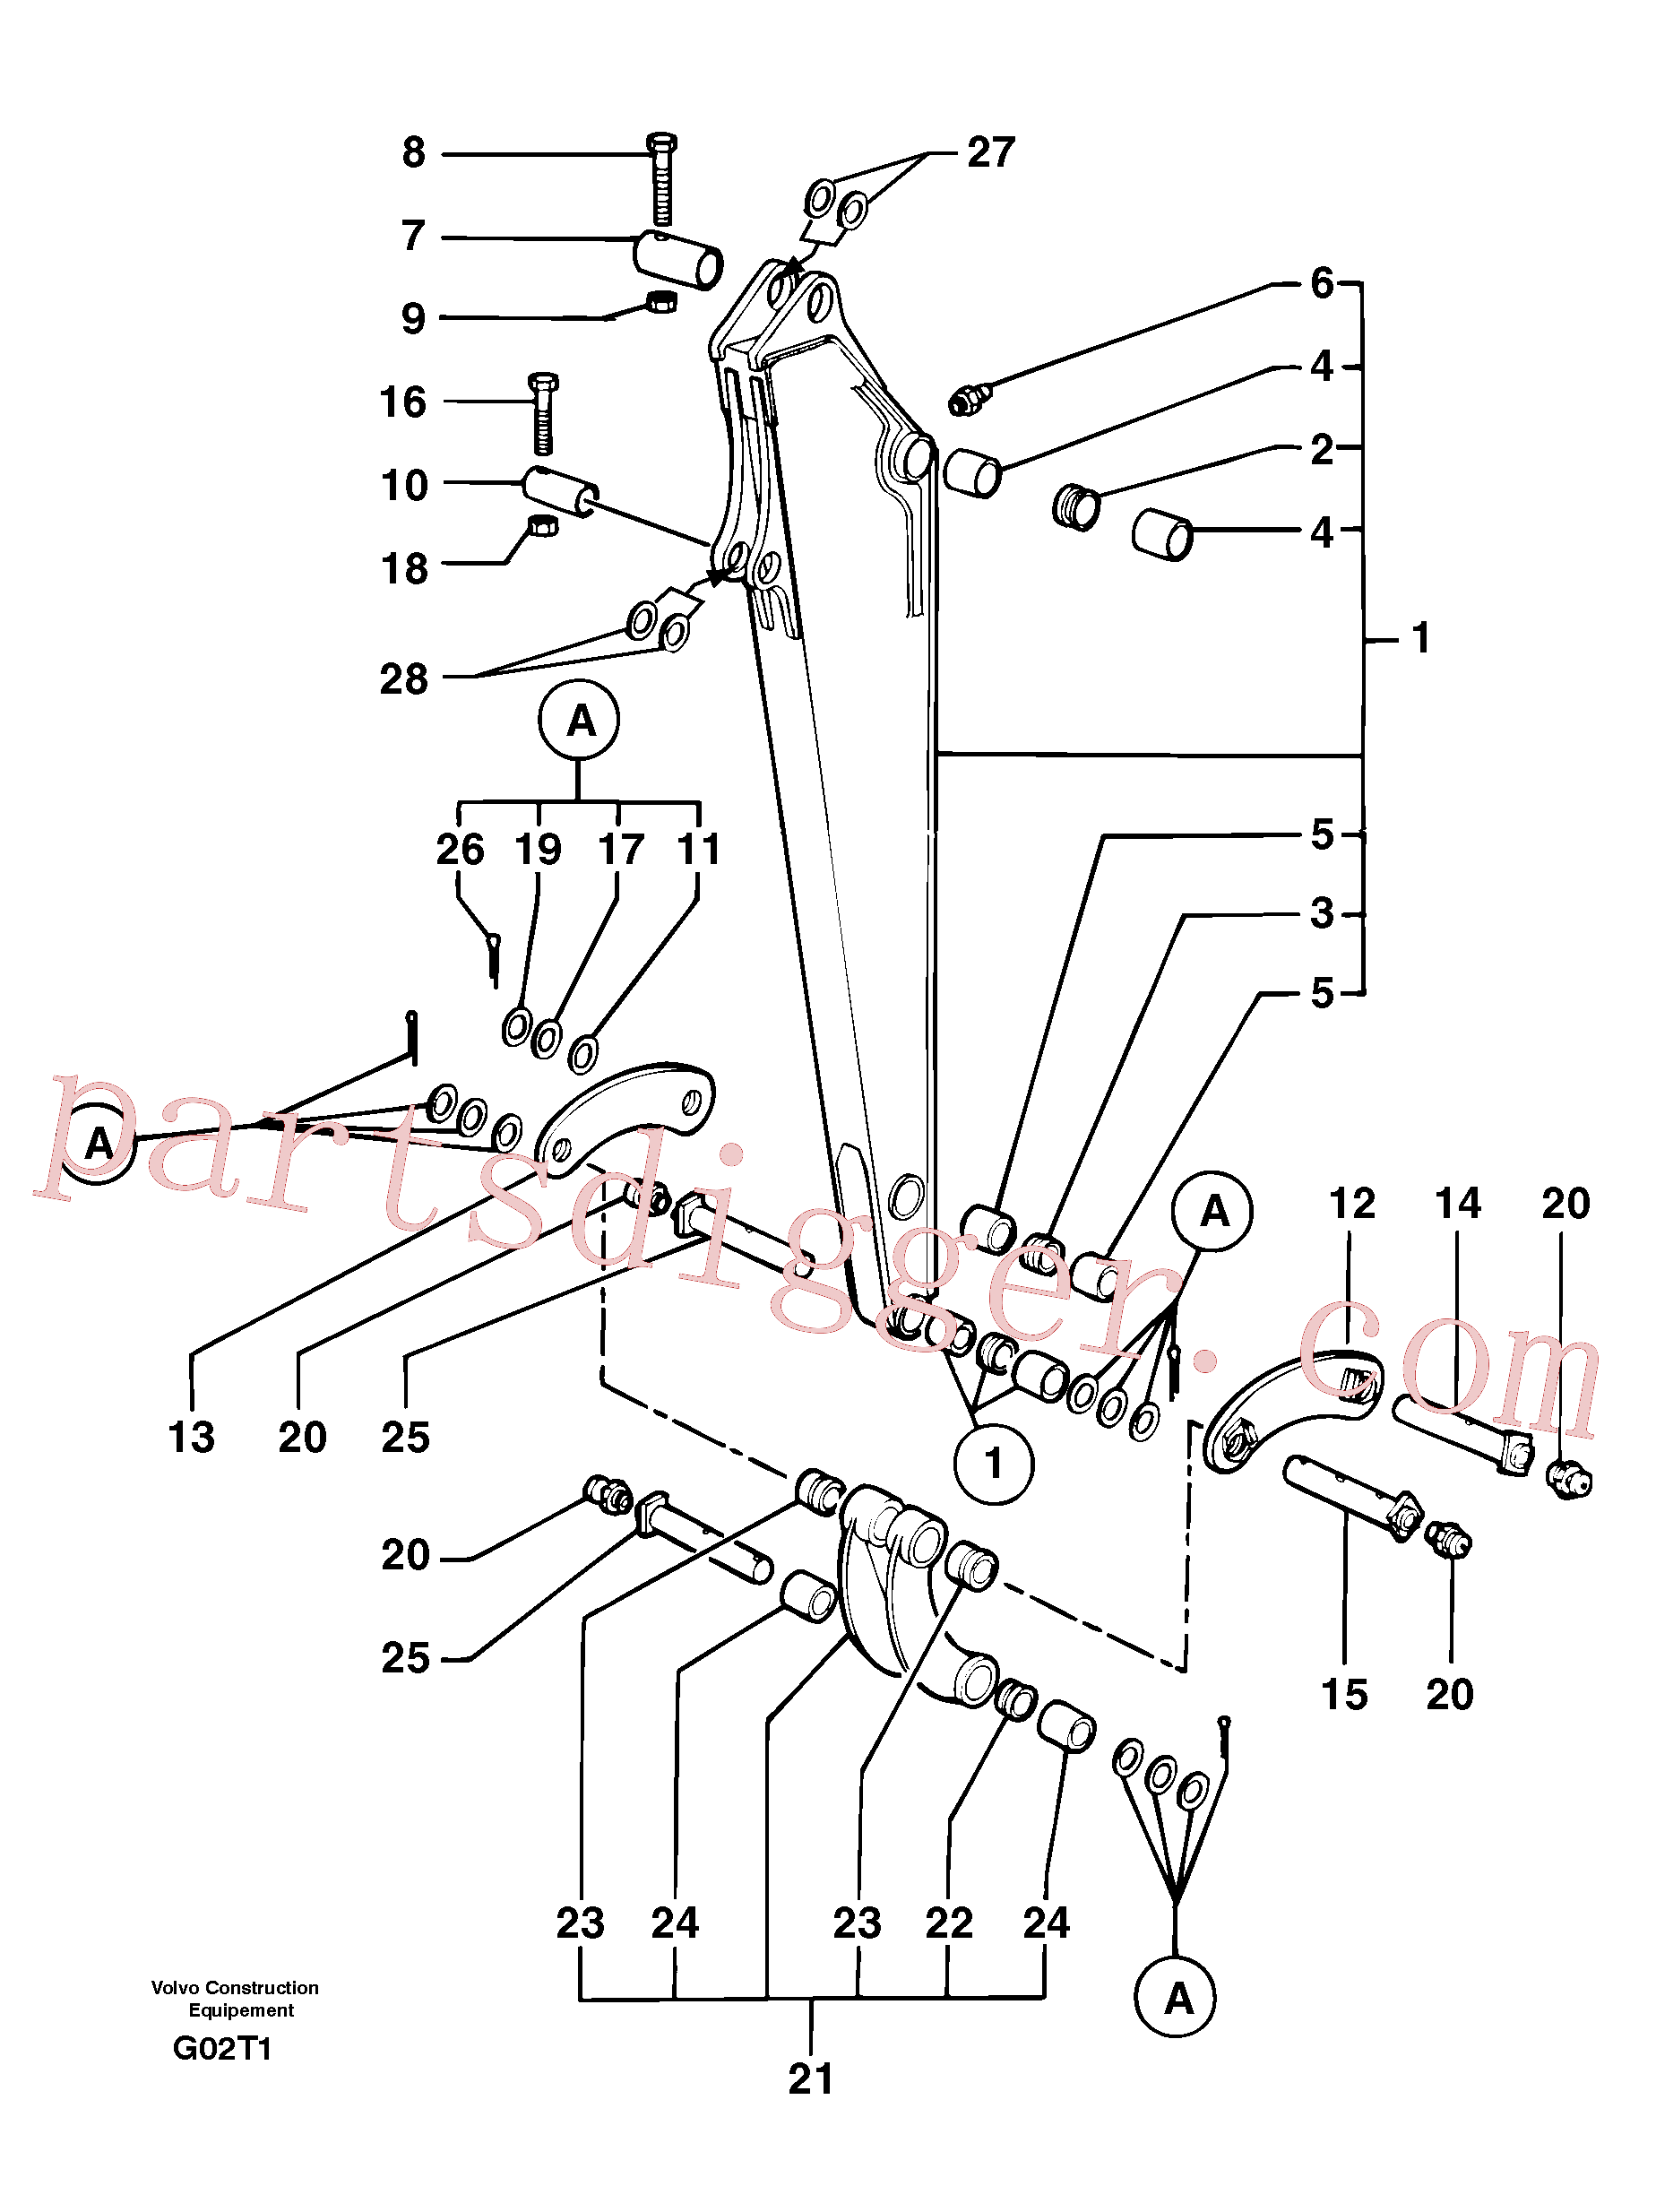 VOE11805773 for Volvo Dipper arm(G02T1 assembly)